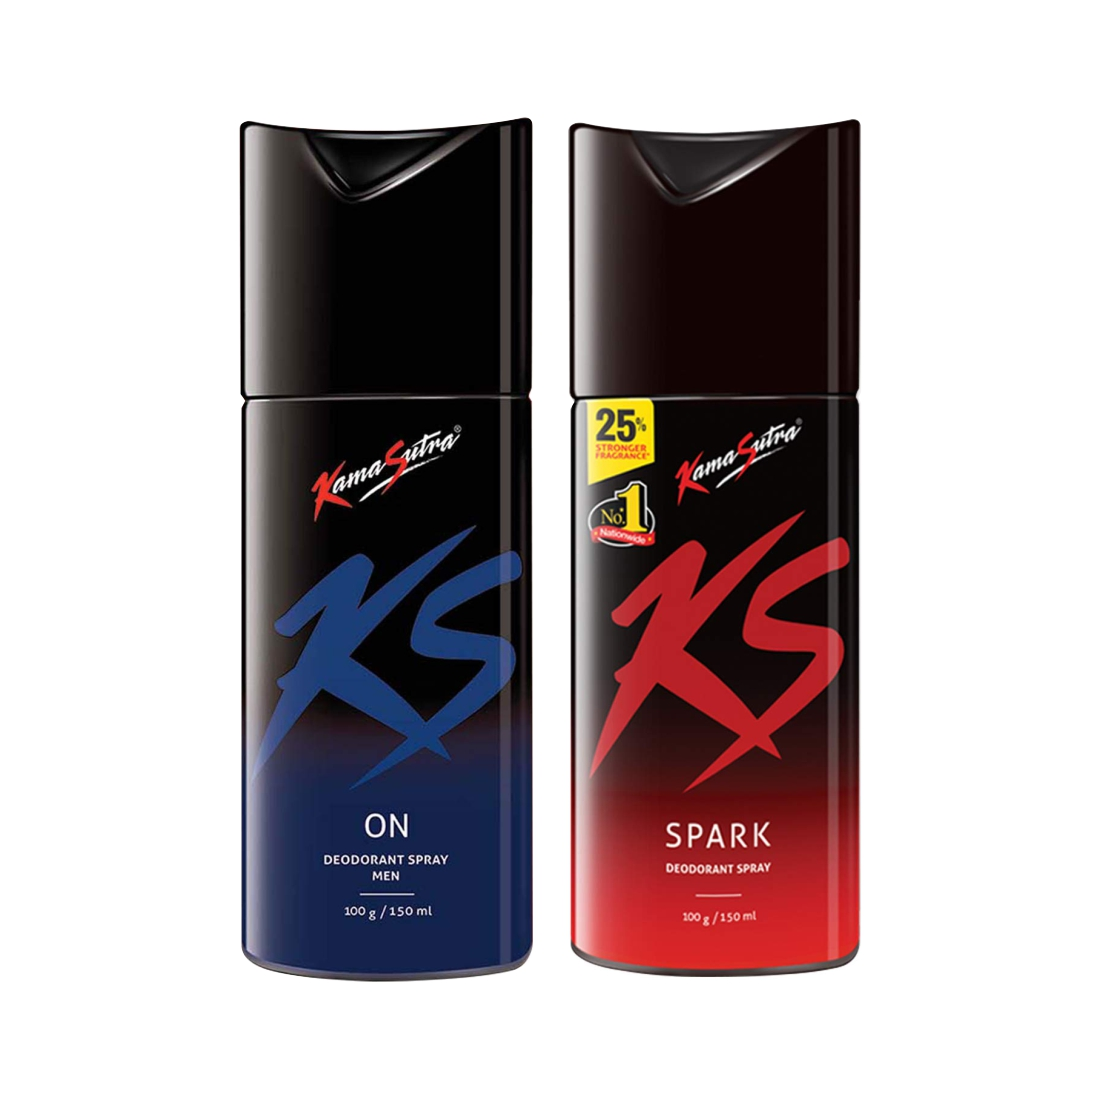 Kamasutra Spark And On Deo 150Ml Pack Of 2